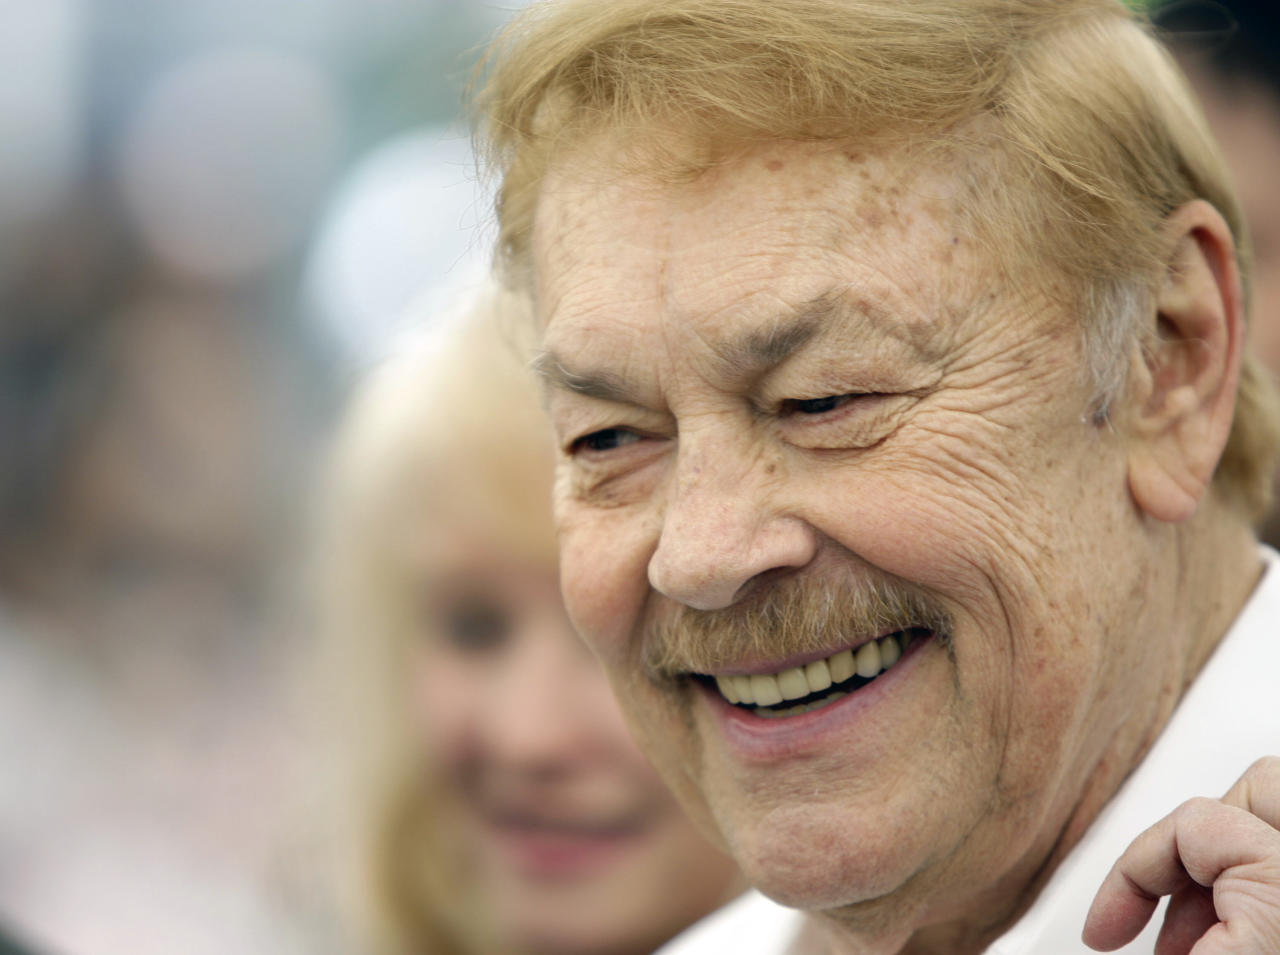 FILE - In this May 8, 2008 file photo, Los Angeles Lakers owner Jerry Buss smiles at the Playmate of the Year luncheon at the Playboy Mansion in Los Angeles. Buss, the Lakers' playboy owner who shepherded the NBA franchise to 10 championships, has died. He was 79. Bob Steiner, an assistant to Buss, confirmed Monday, Feb. 18, 2013 that Buss had died in Los Angeles. Further details were not available. (AP Photo/Matt Sayles, File)